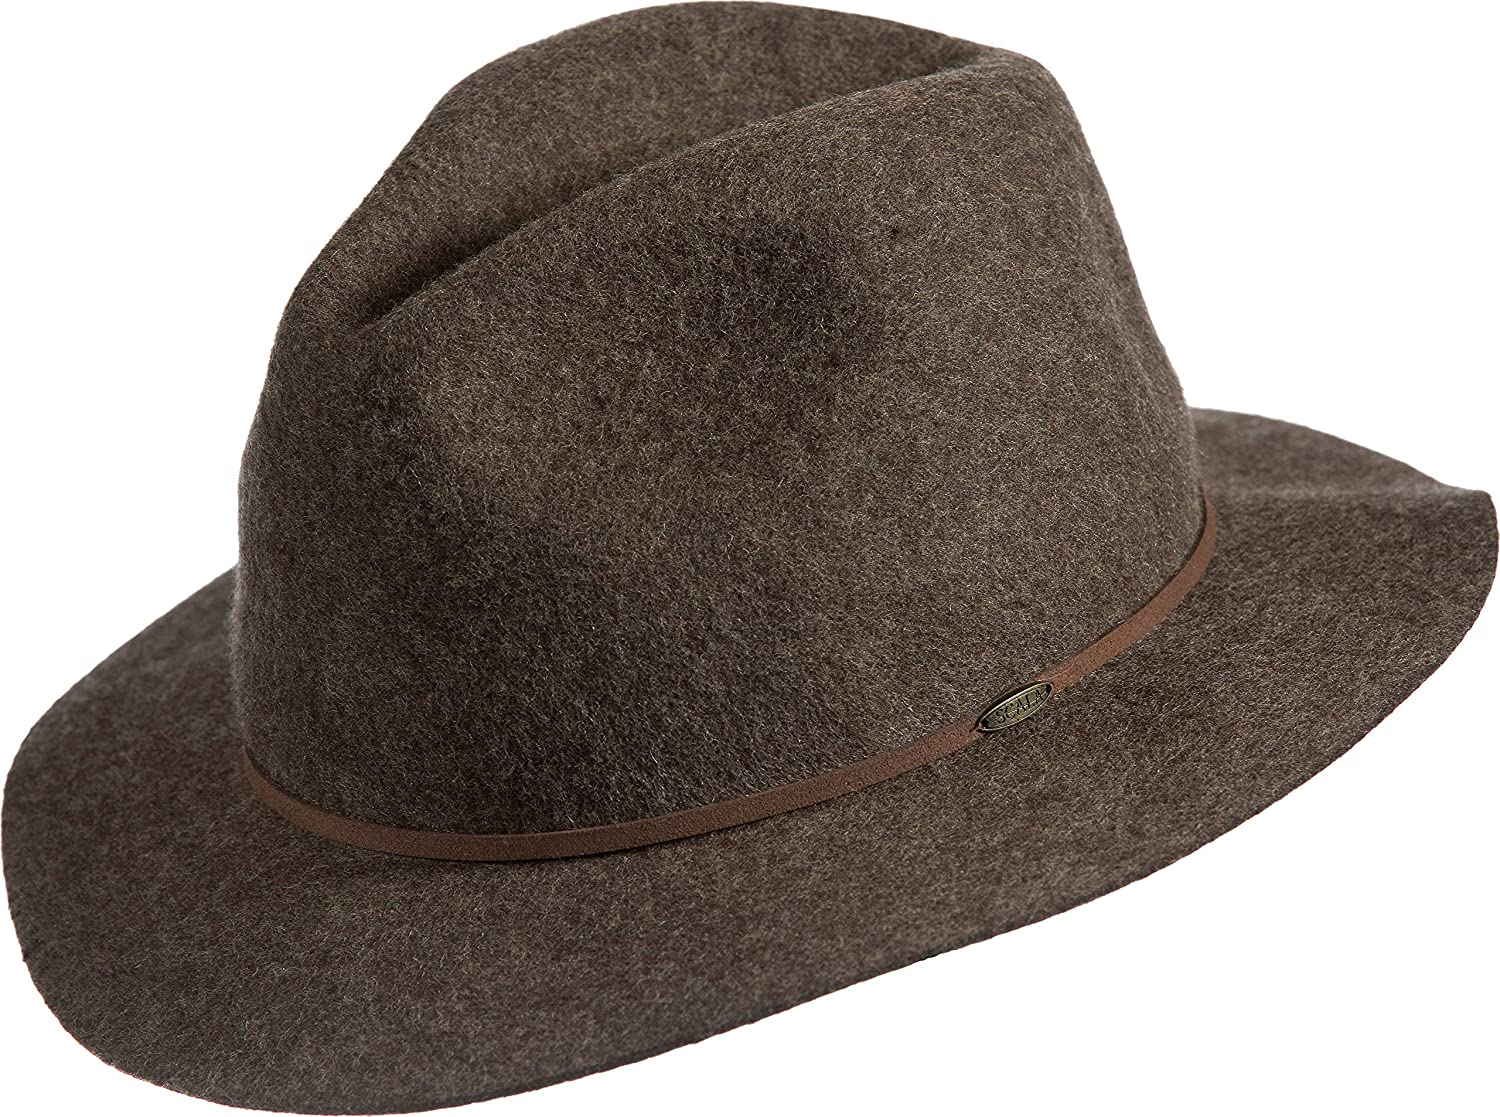 28d3889cf83 Overland Edward Crushable Wool Felt Safari Hat at Amazon Women s Clothing  store